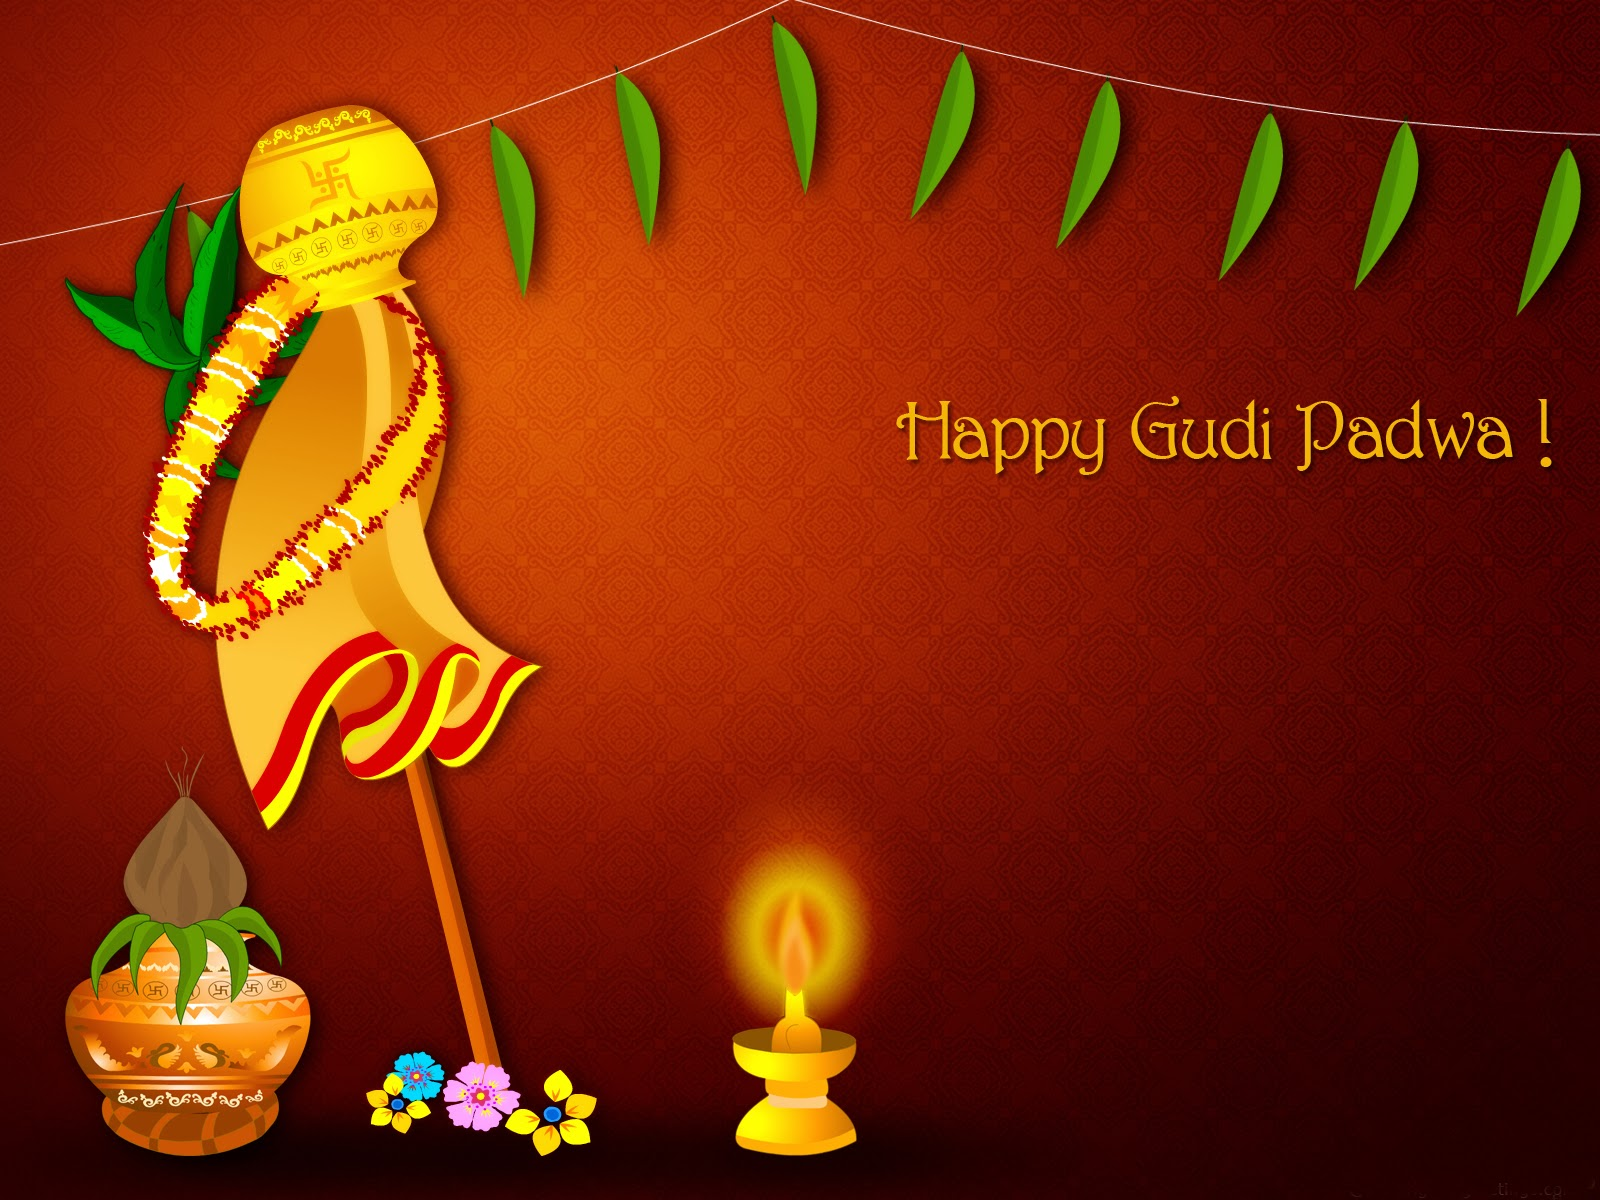 Gudi Padwa 2014 Images red background